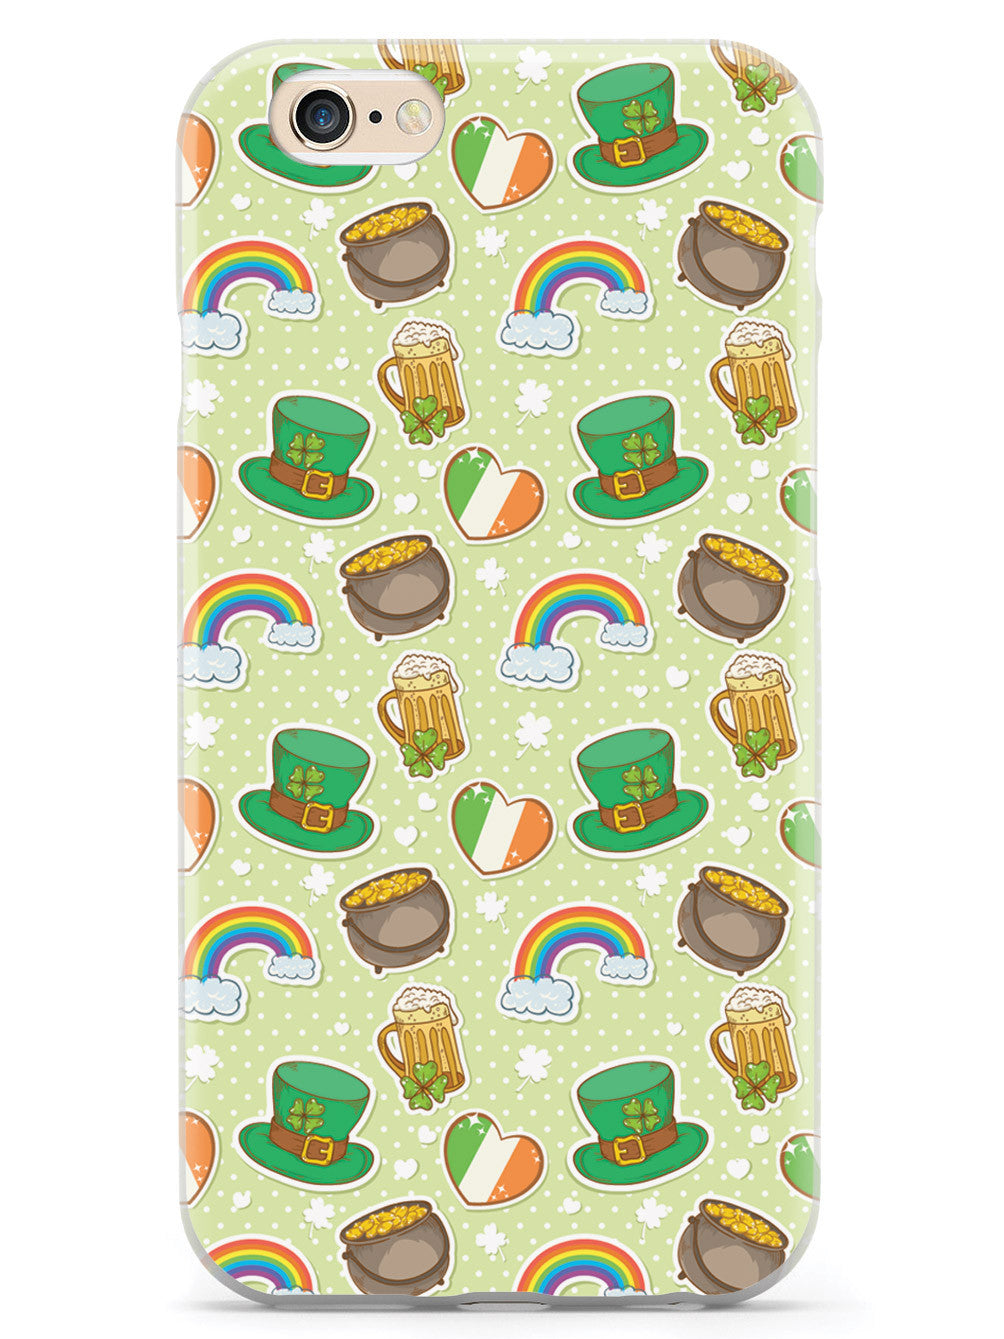 Cute St. Patrick's Day Icons - White Case